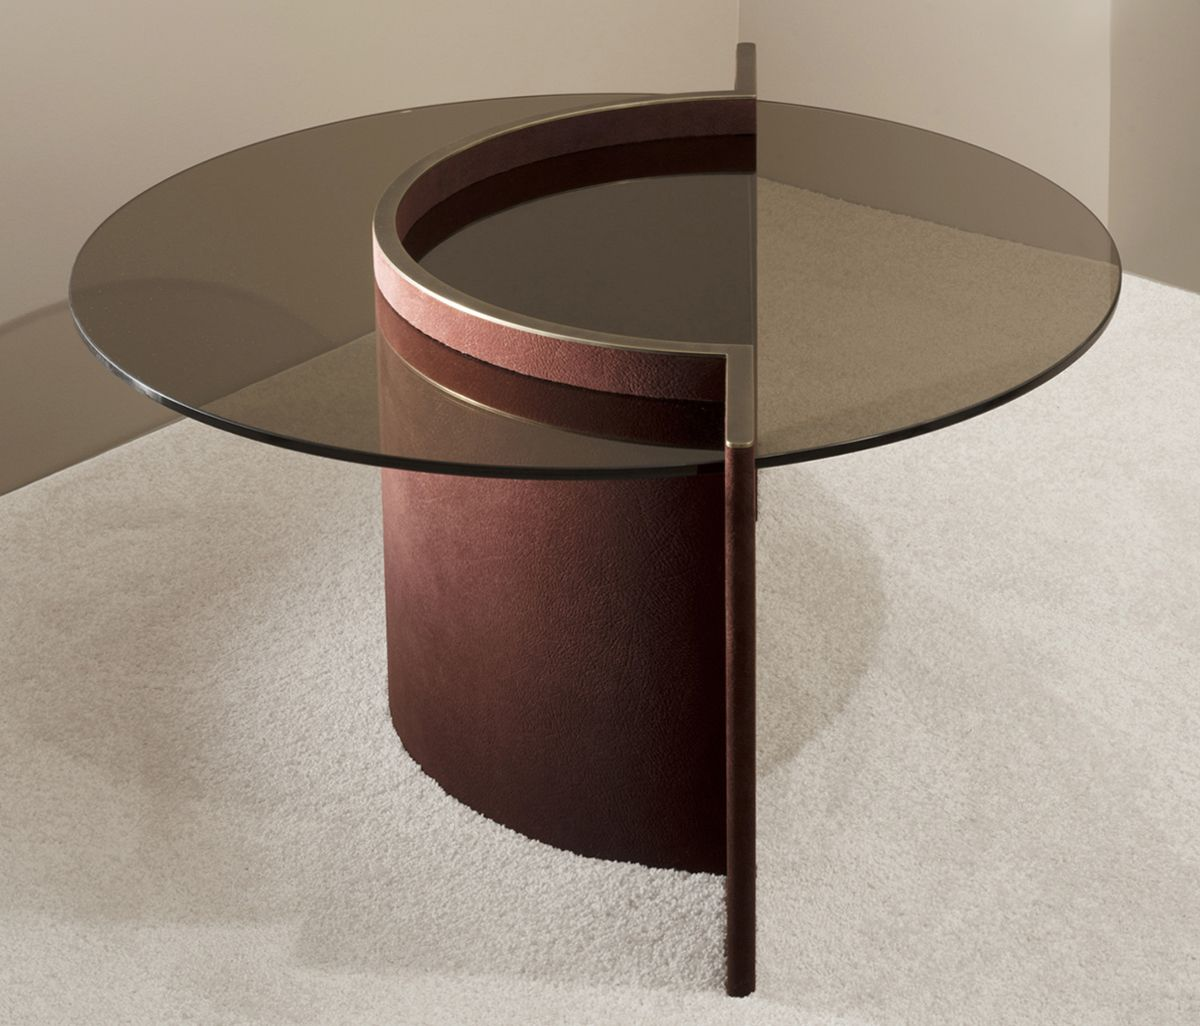 A New Furniture Collection That Merges Two Top Design Trends Sight Unseen Coffee Table Coffee Table Design Luxury Furniture Design [ 1026 x 1200 Pixel ]